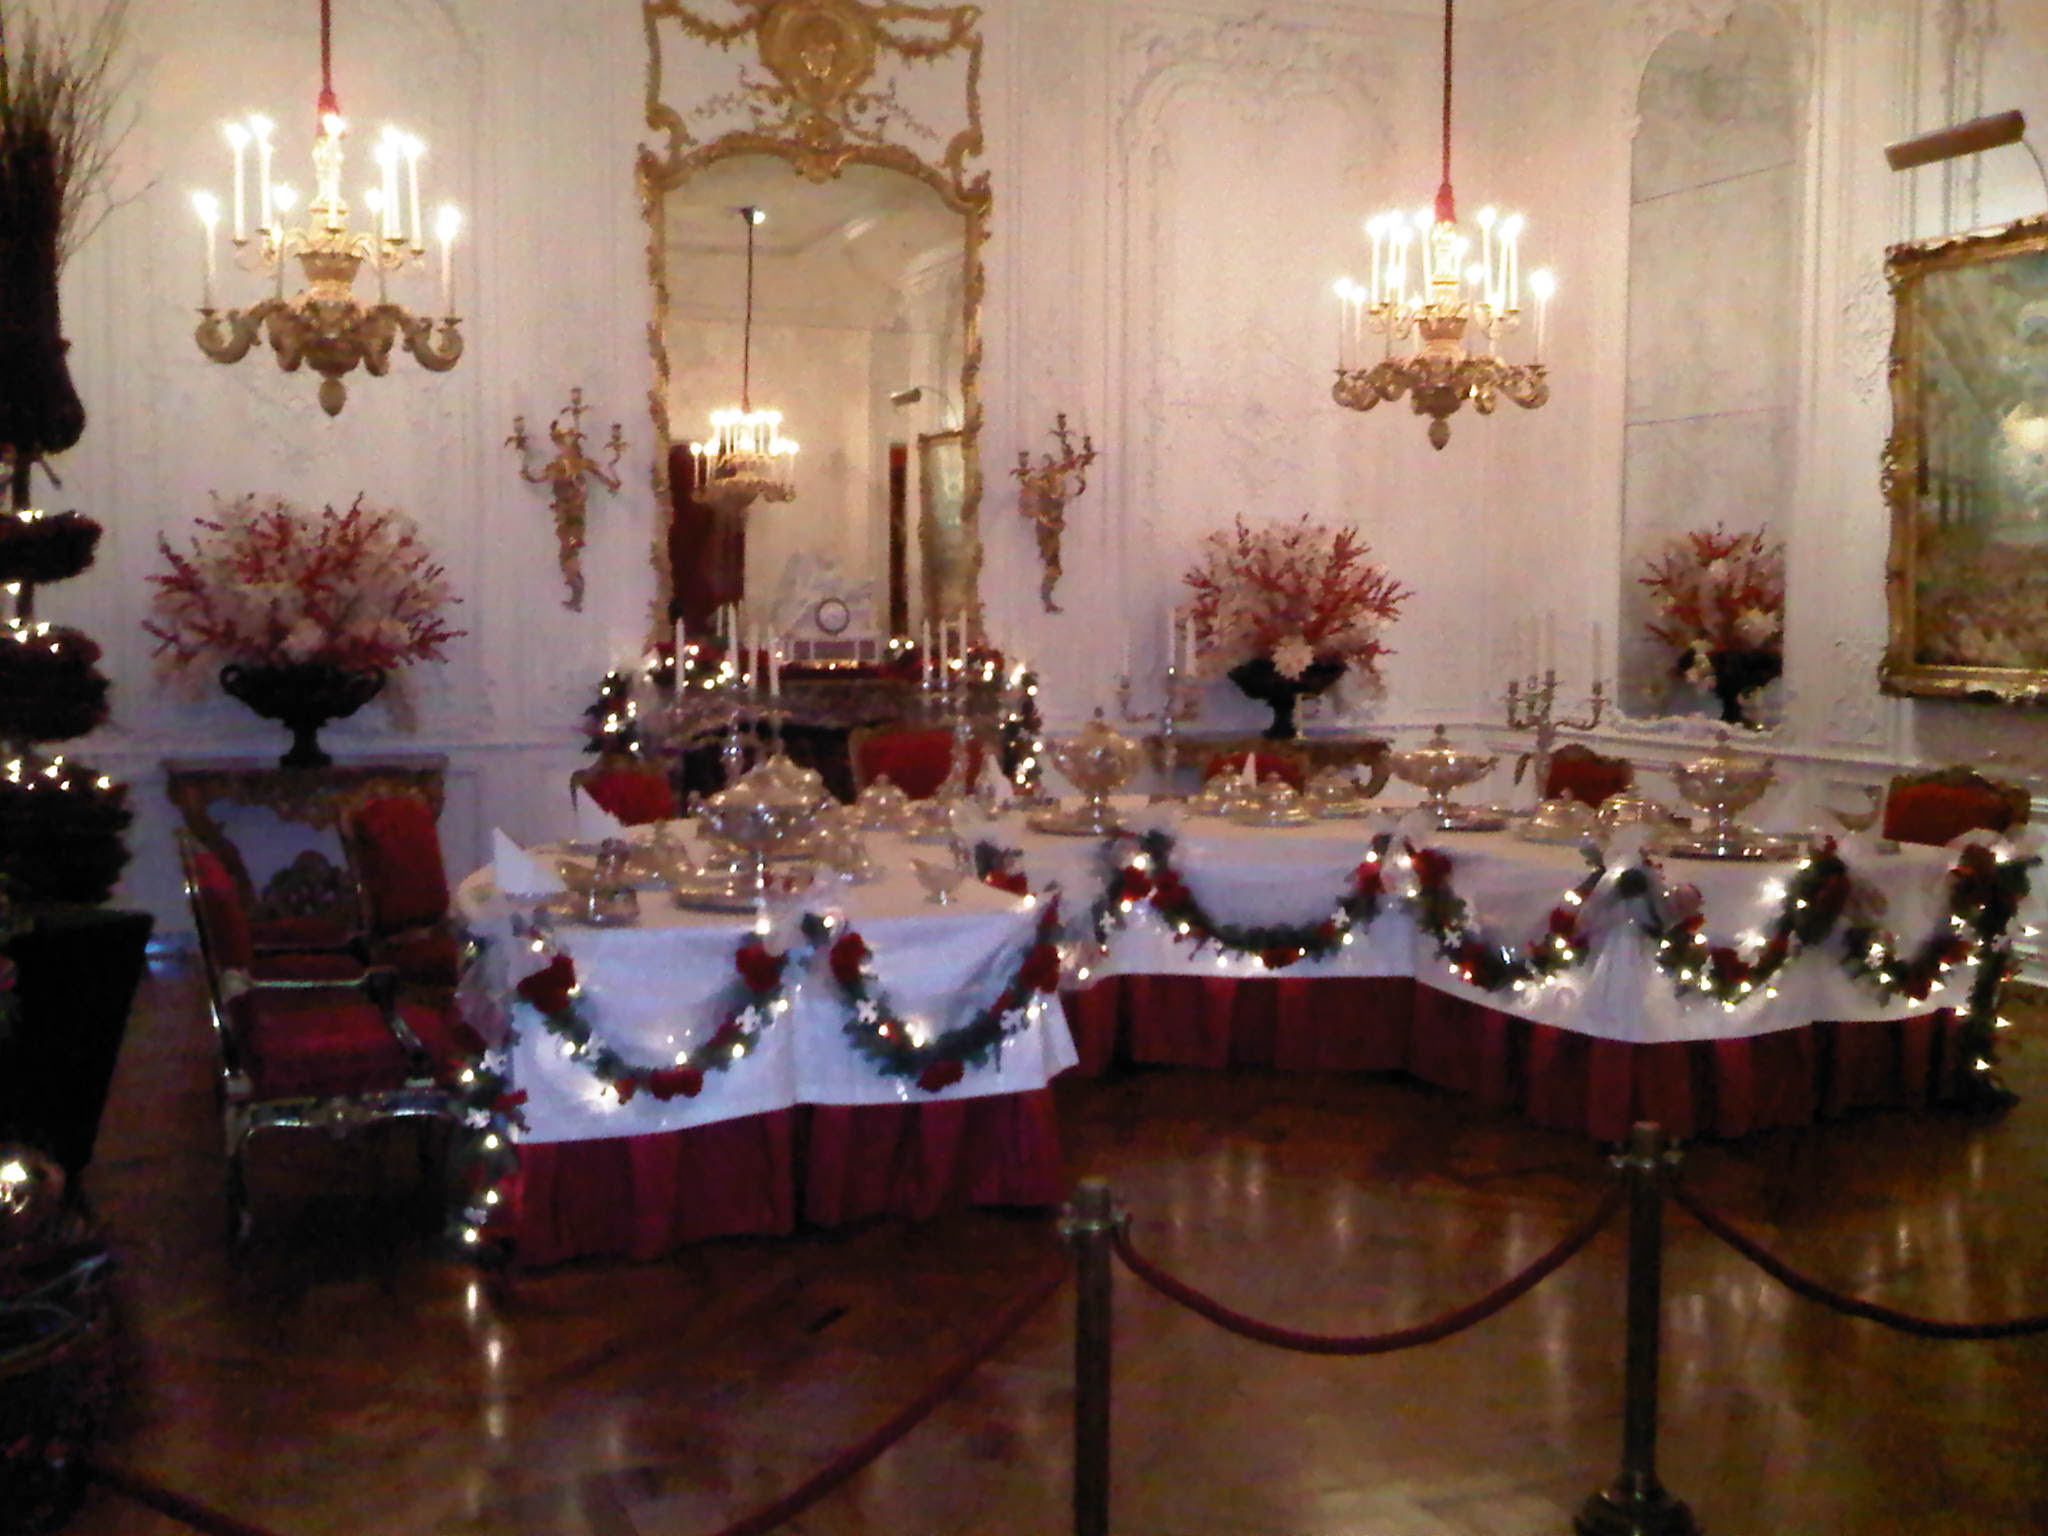 File:Christmas dining room.jpg - Wikipedia, the free encyclopedia